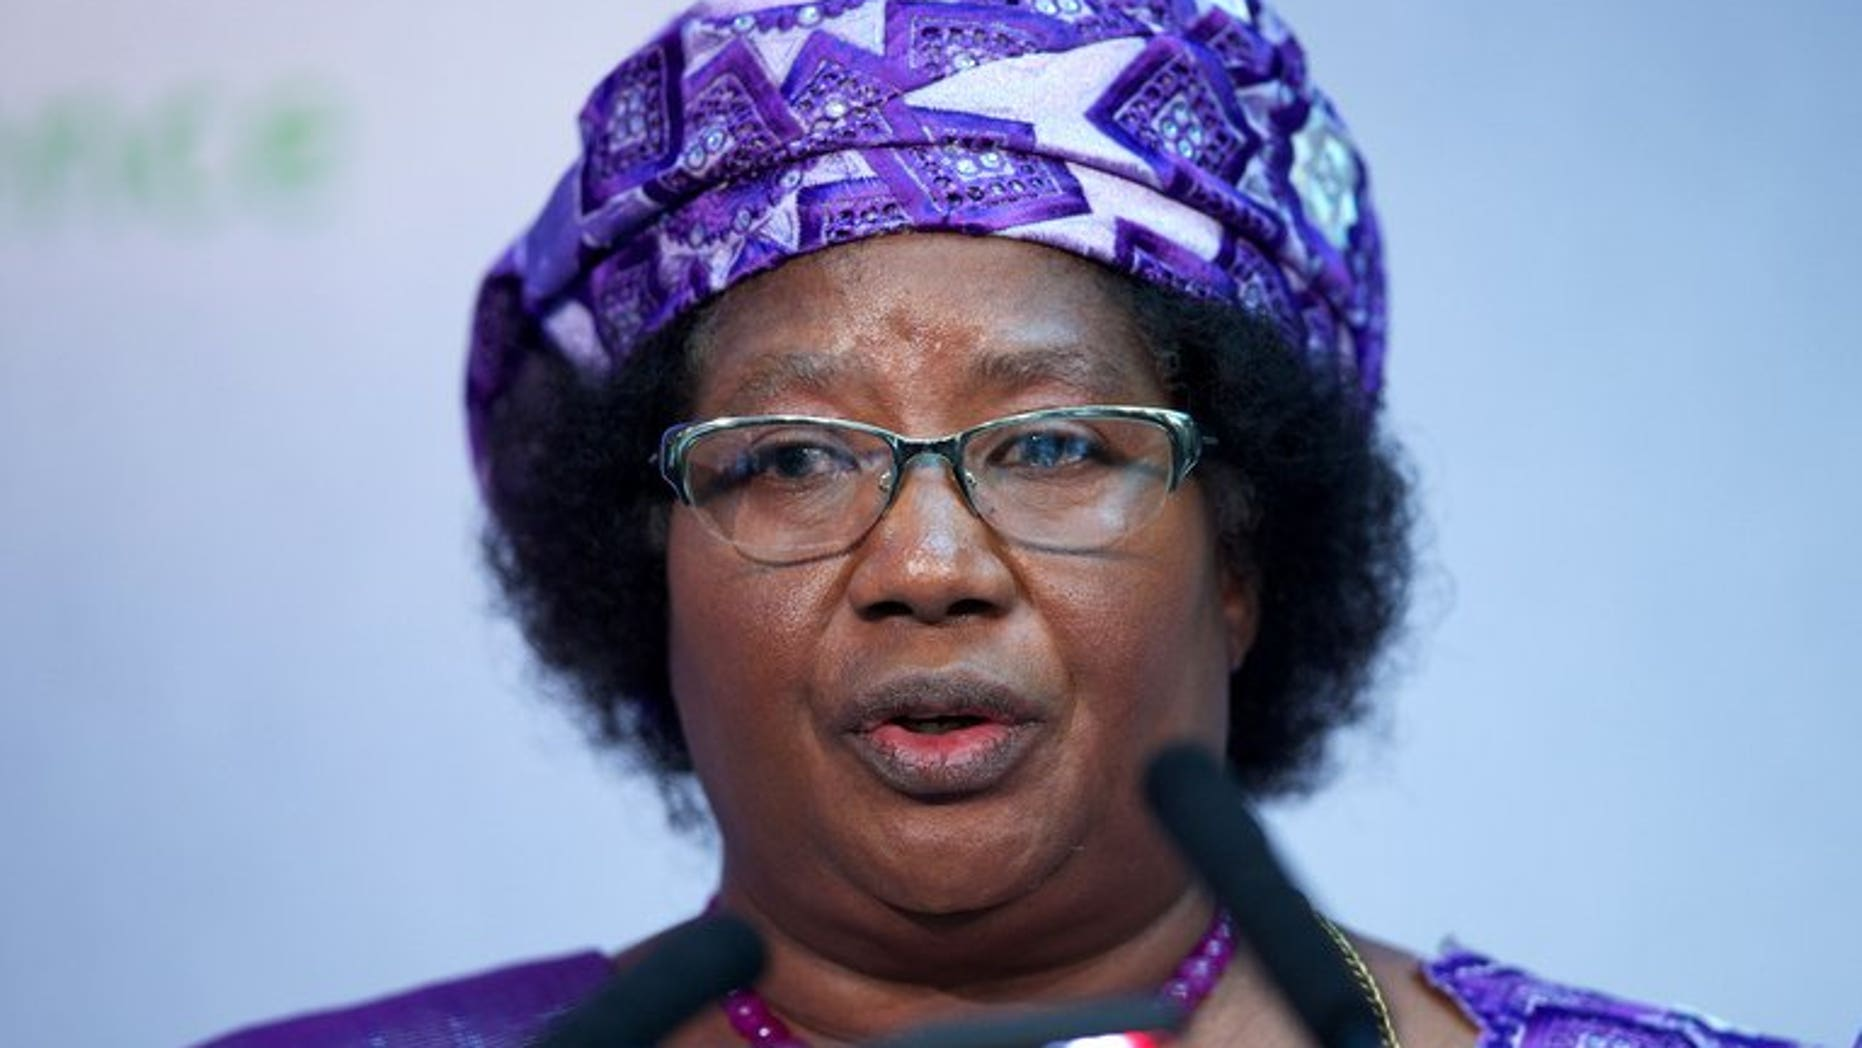 President of Malawi Joyce Banda addresses the Nutrition for Growth global hunger summit in central London on June 8, 2013. Banda held emergency talks with security chiefs after the shooting of a top treasury official who was poised to unveil a network of corruption.